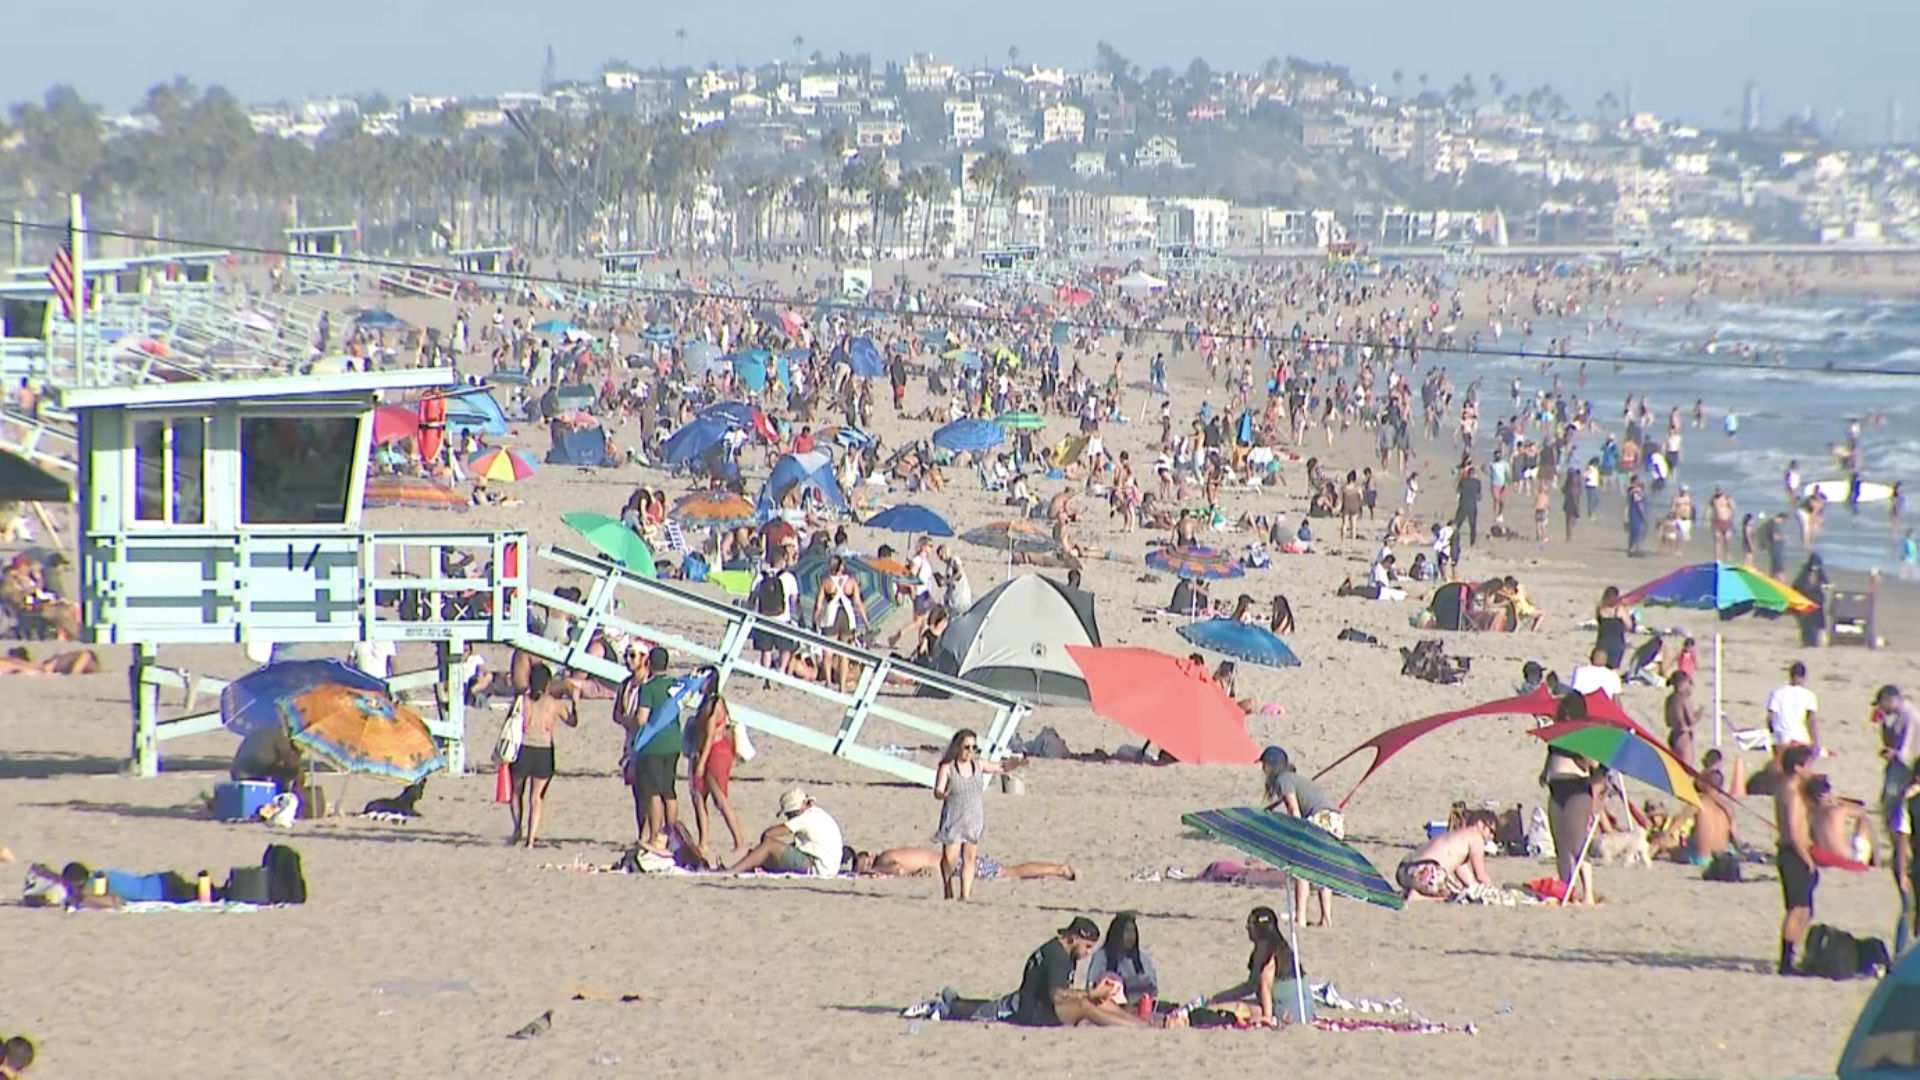 Beachgoers cool down in Santa Monica on July 11, 2020. (KTLA)